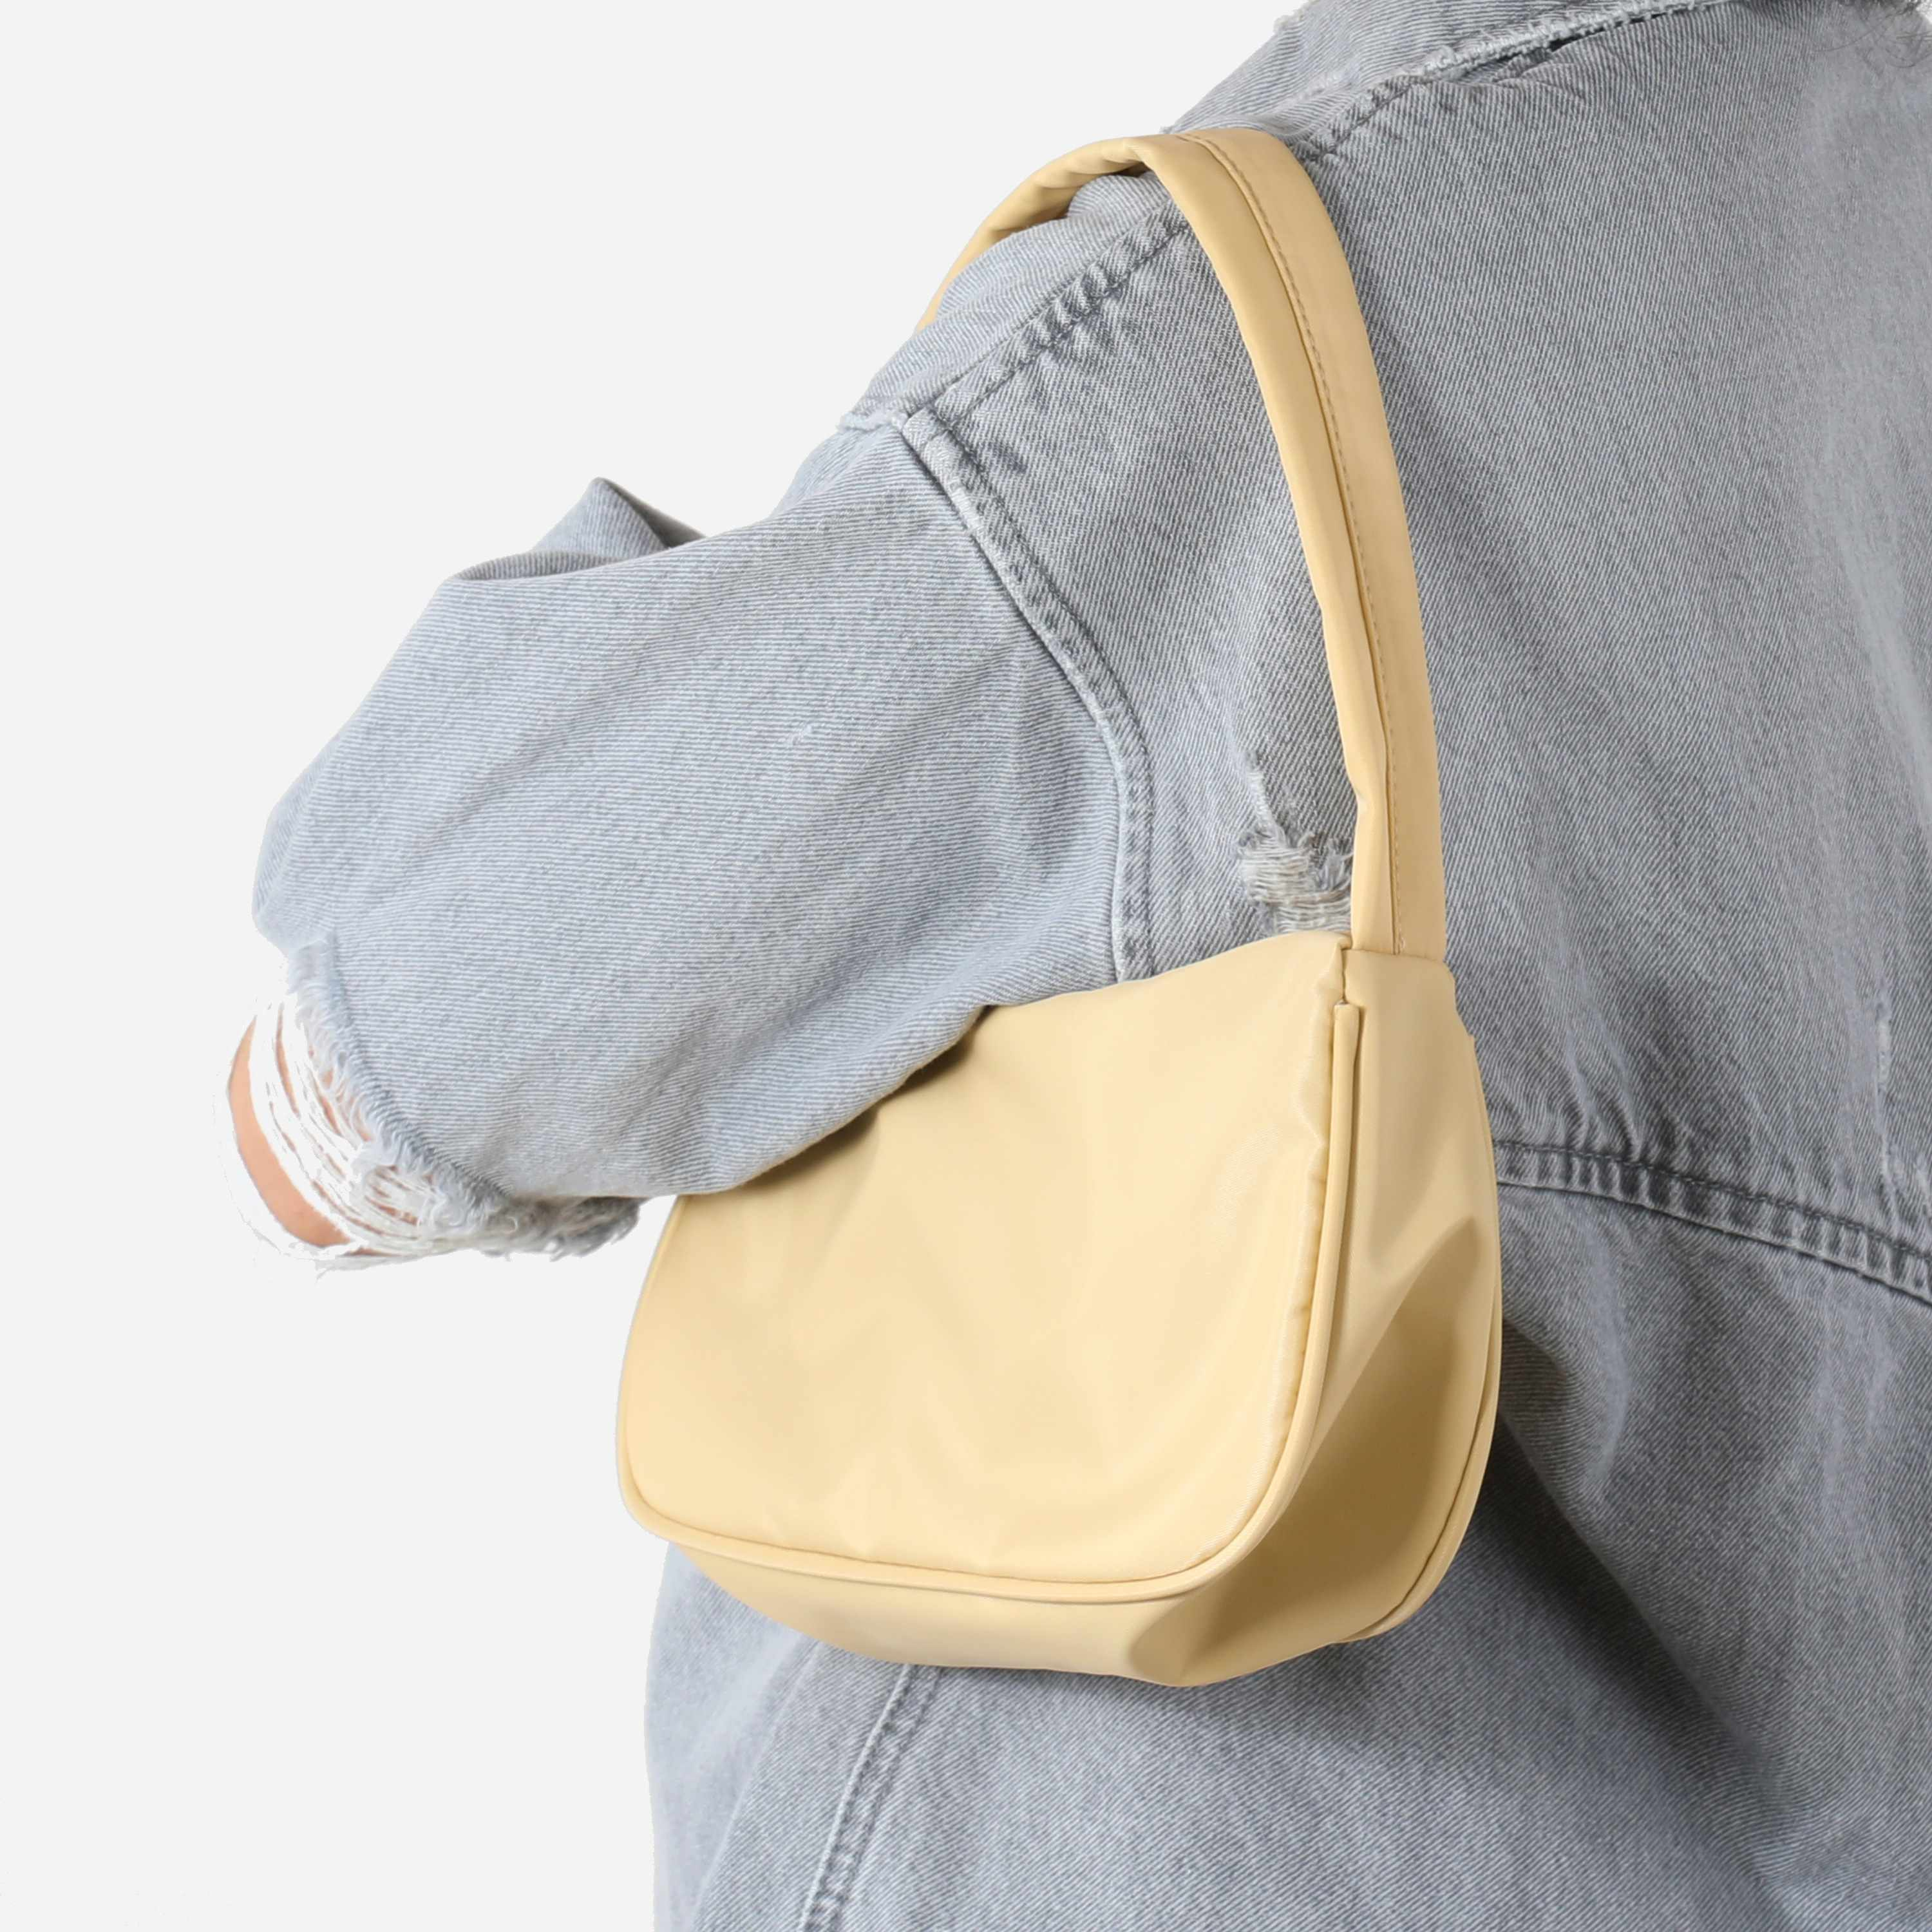 Baguette Shoulder Bag In Nude Nylon